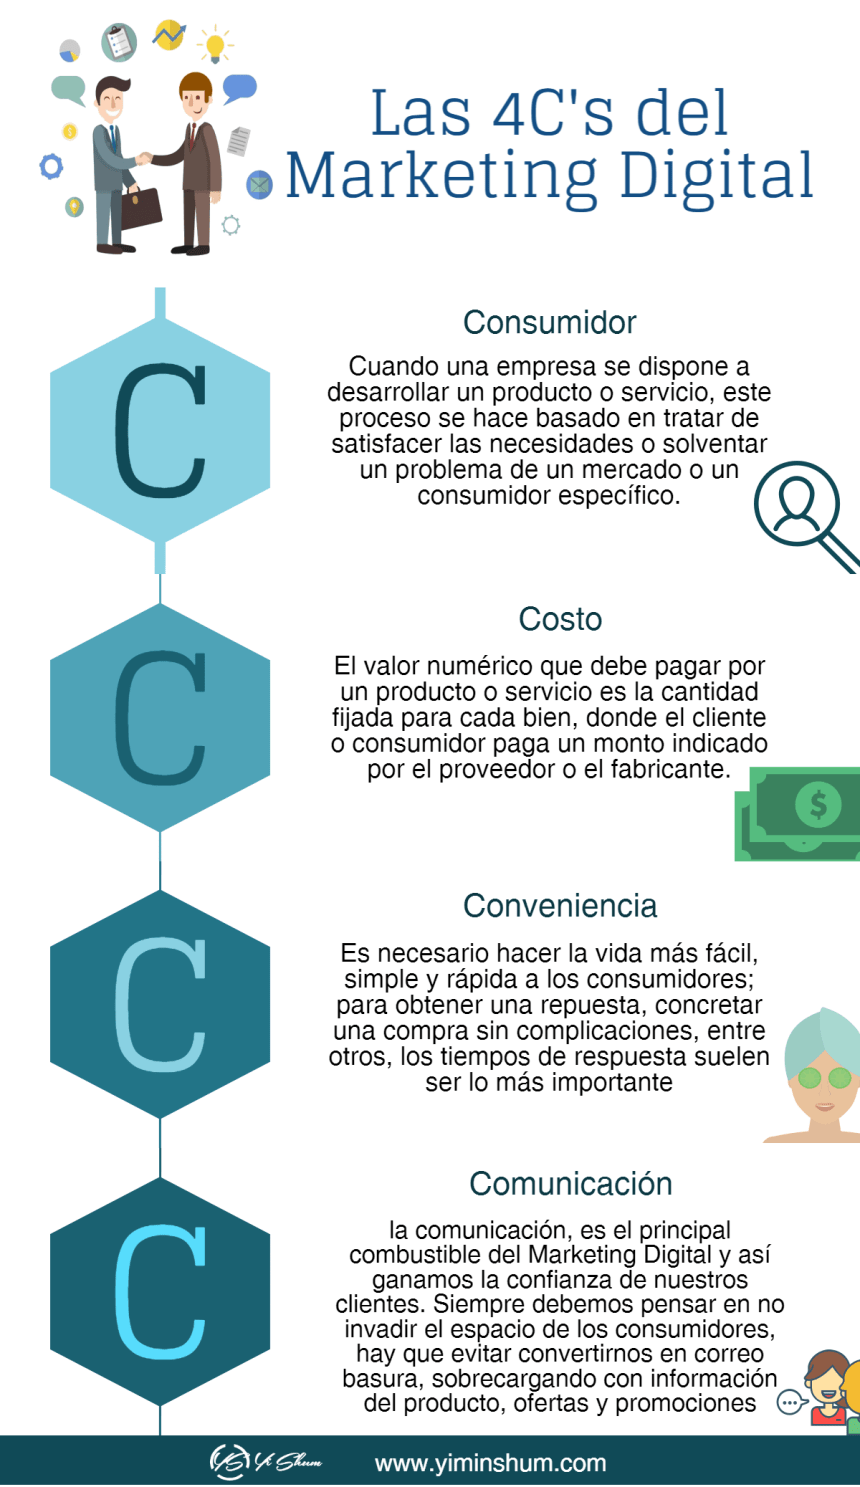 Las 4 C's del Marketing Digital